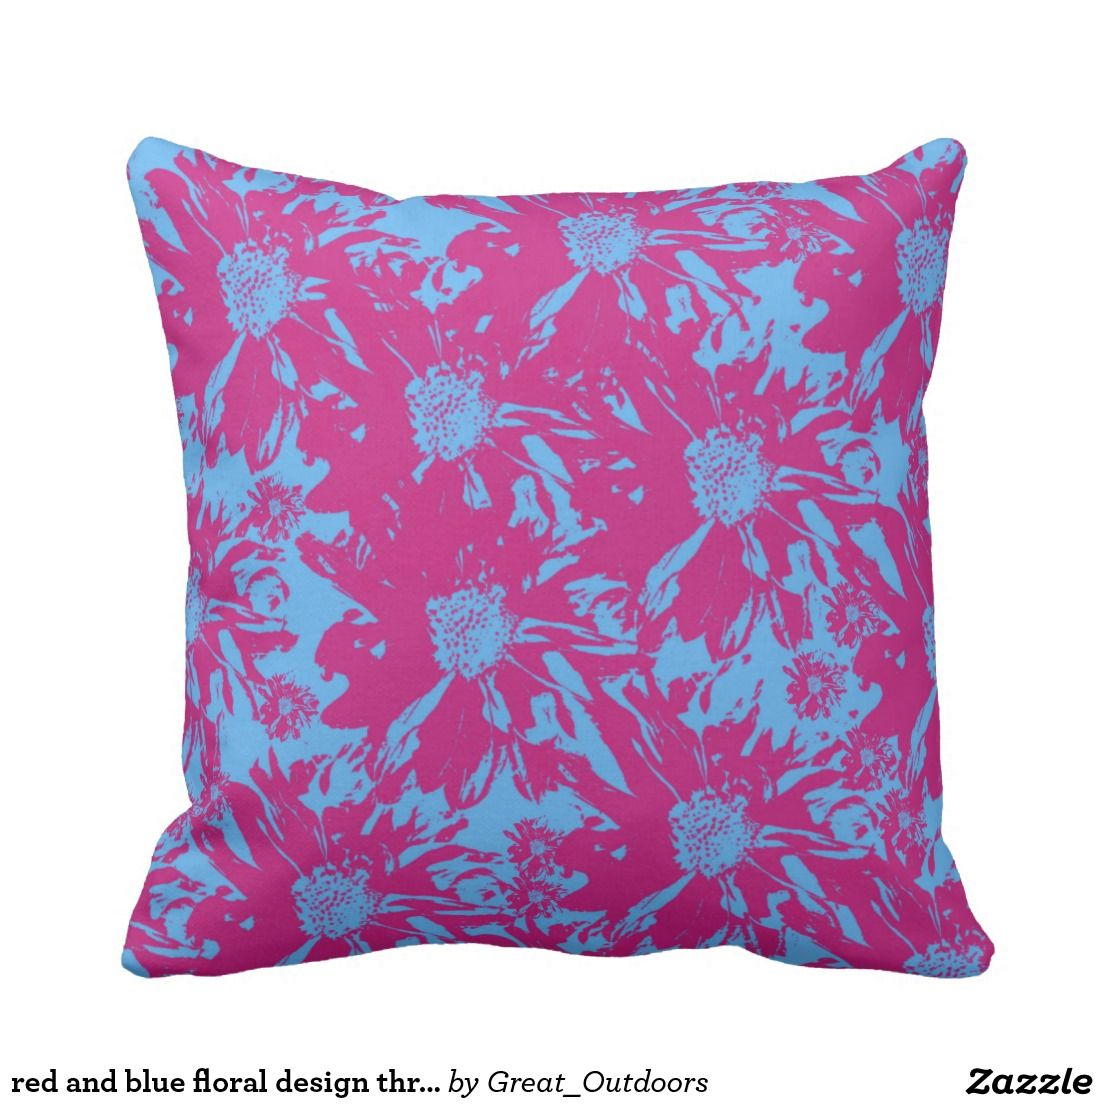 red and blue floral design throw and lumbar pillow